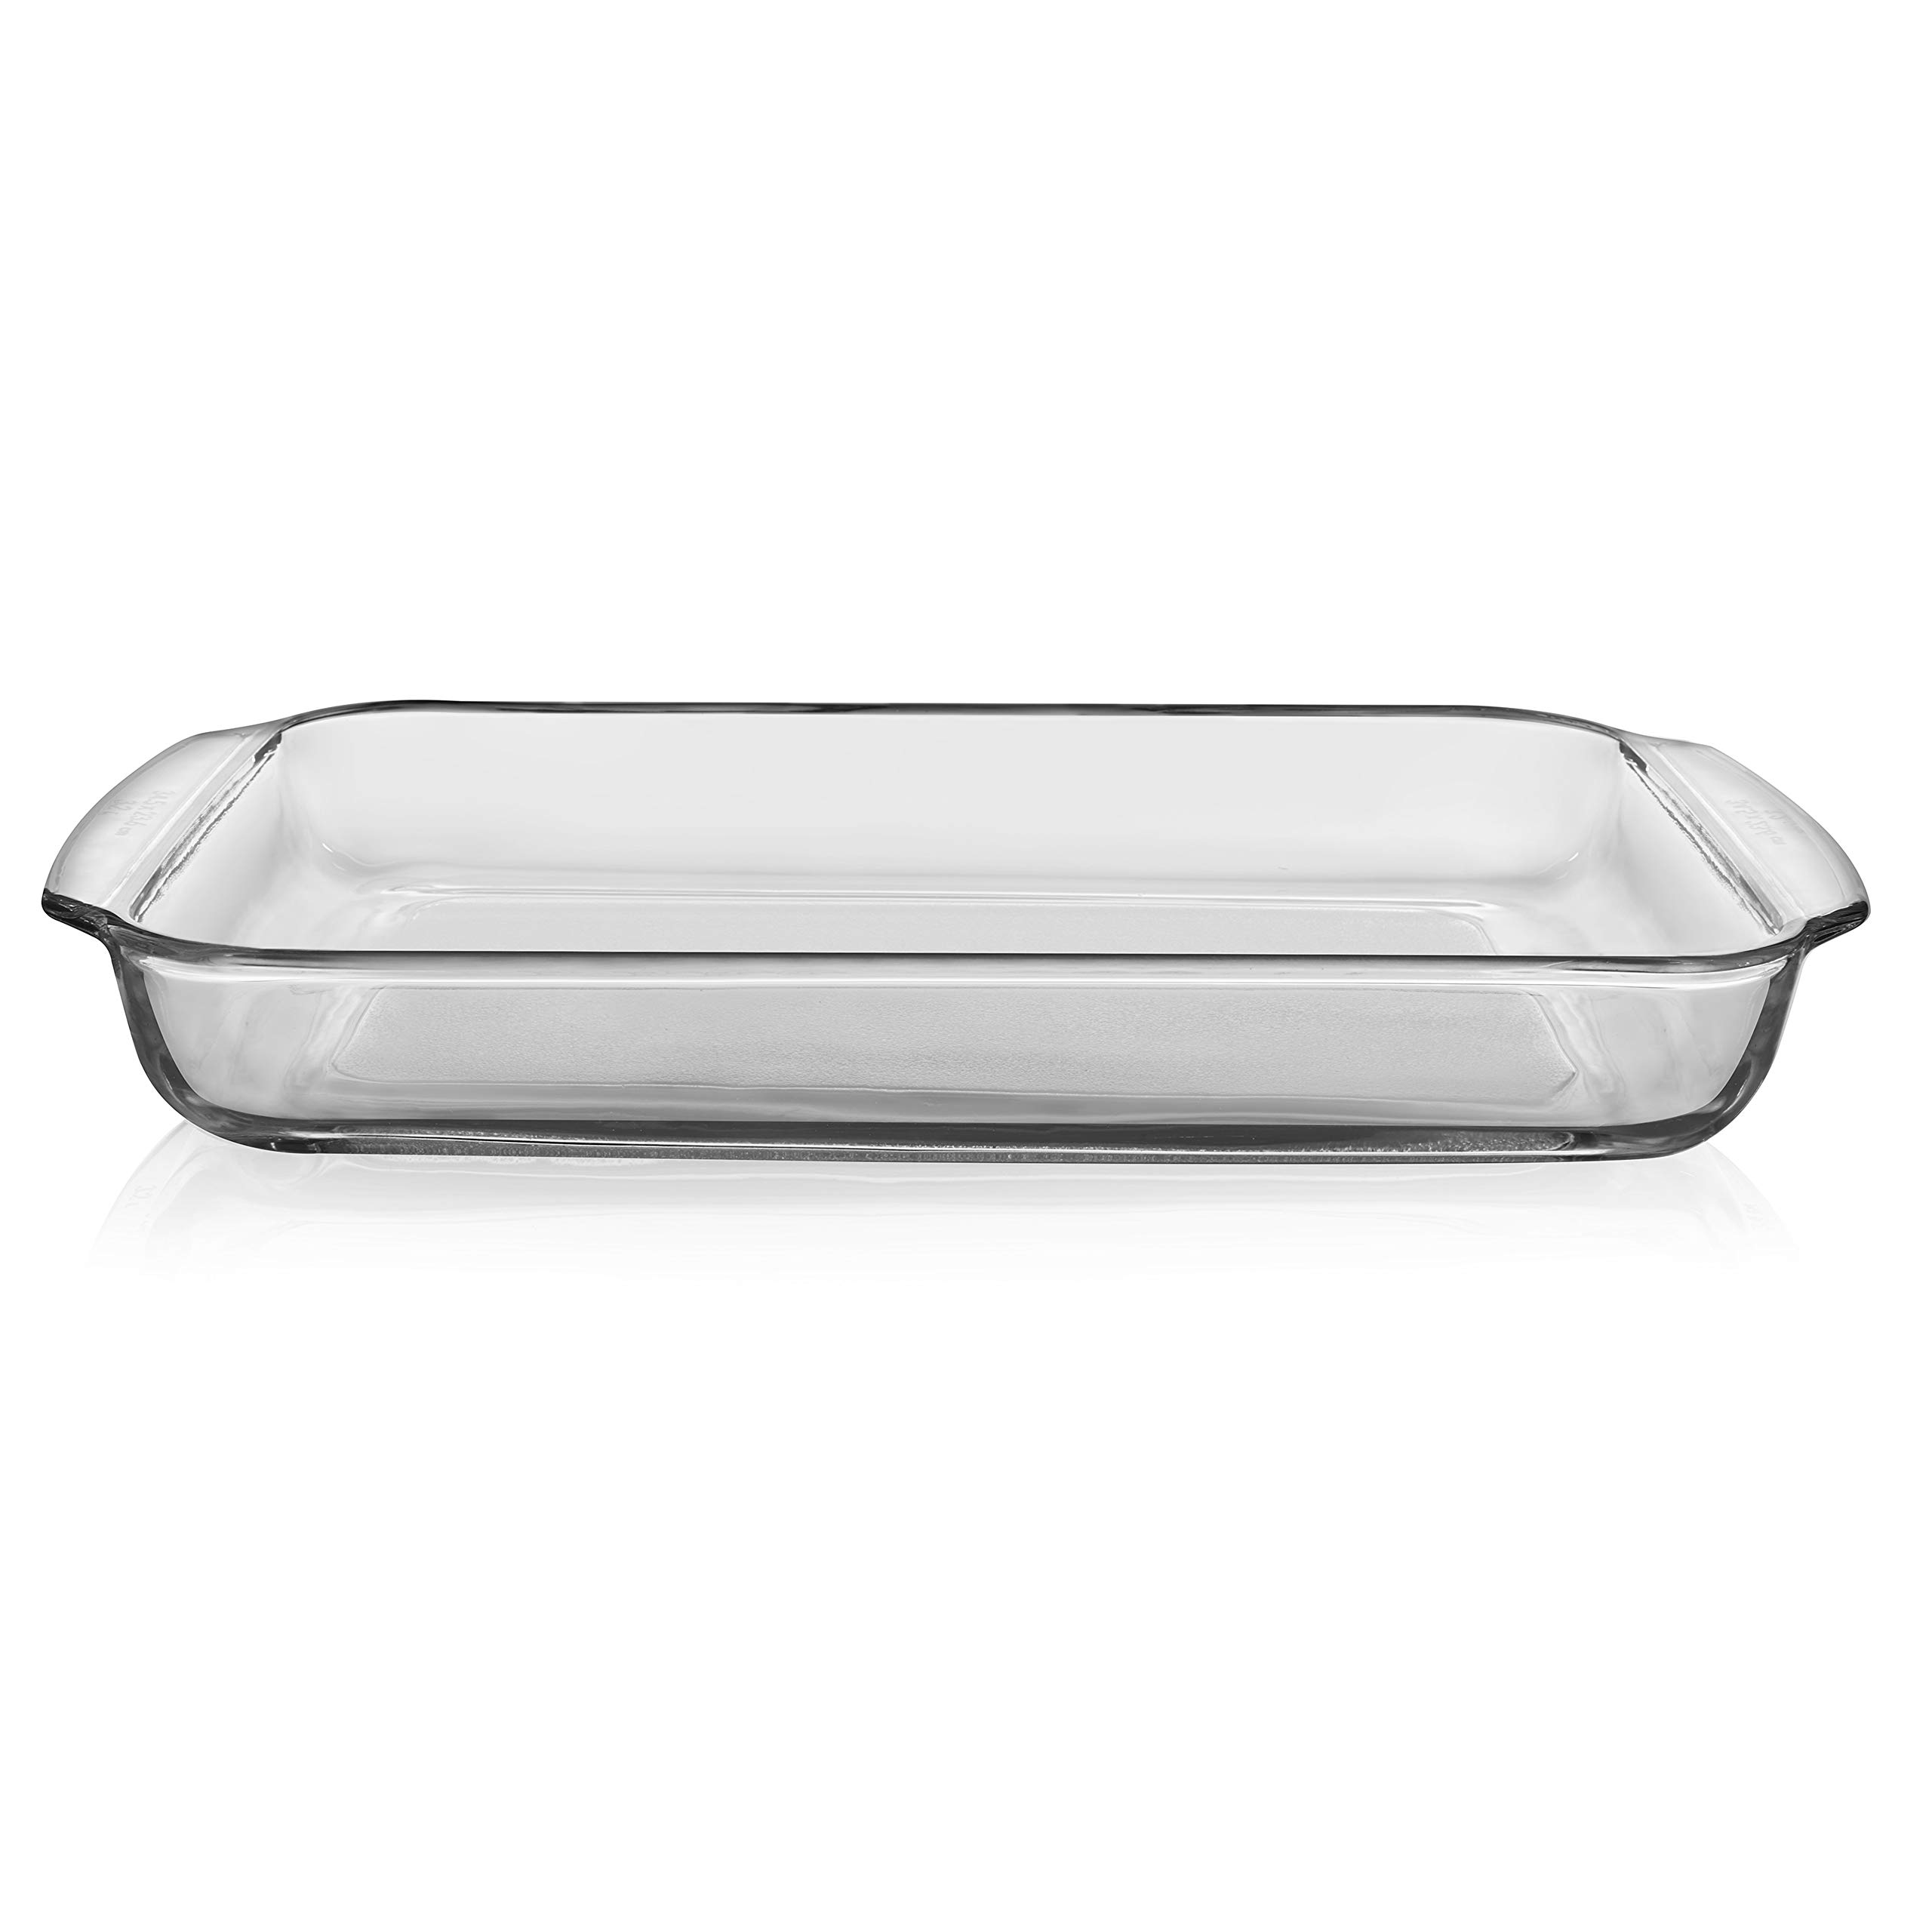 Libbey Baker's Premium 6-Piece Glass Casserole Baking Dish Set with 2 Covers by Libbey (Image #2)